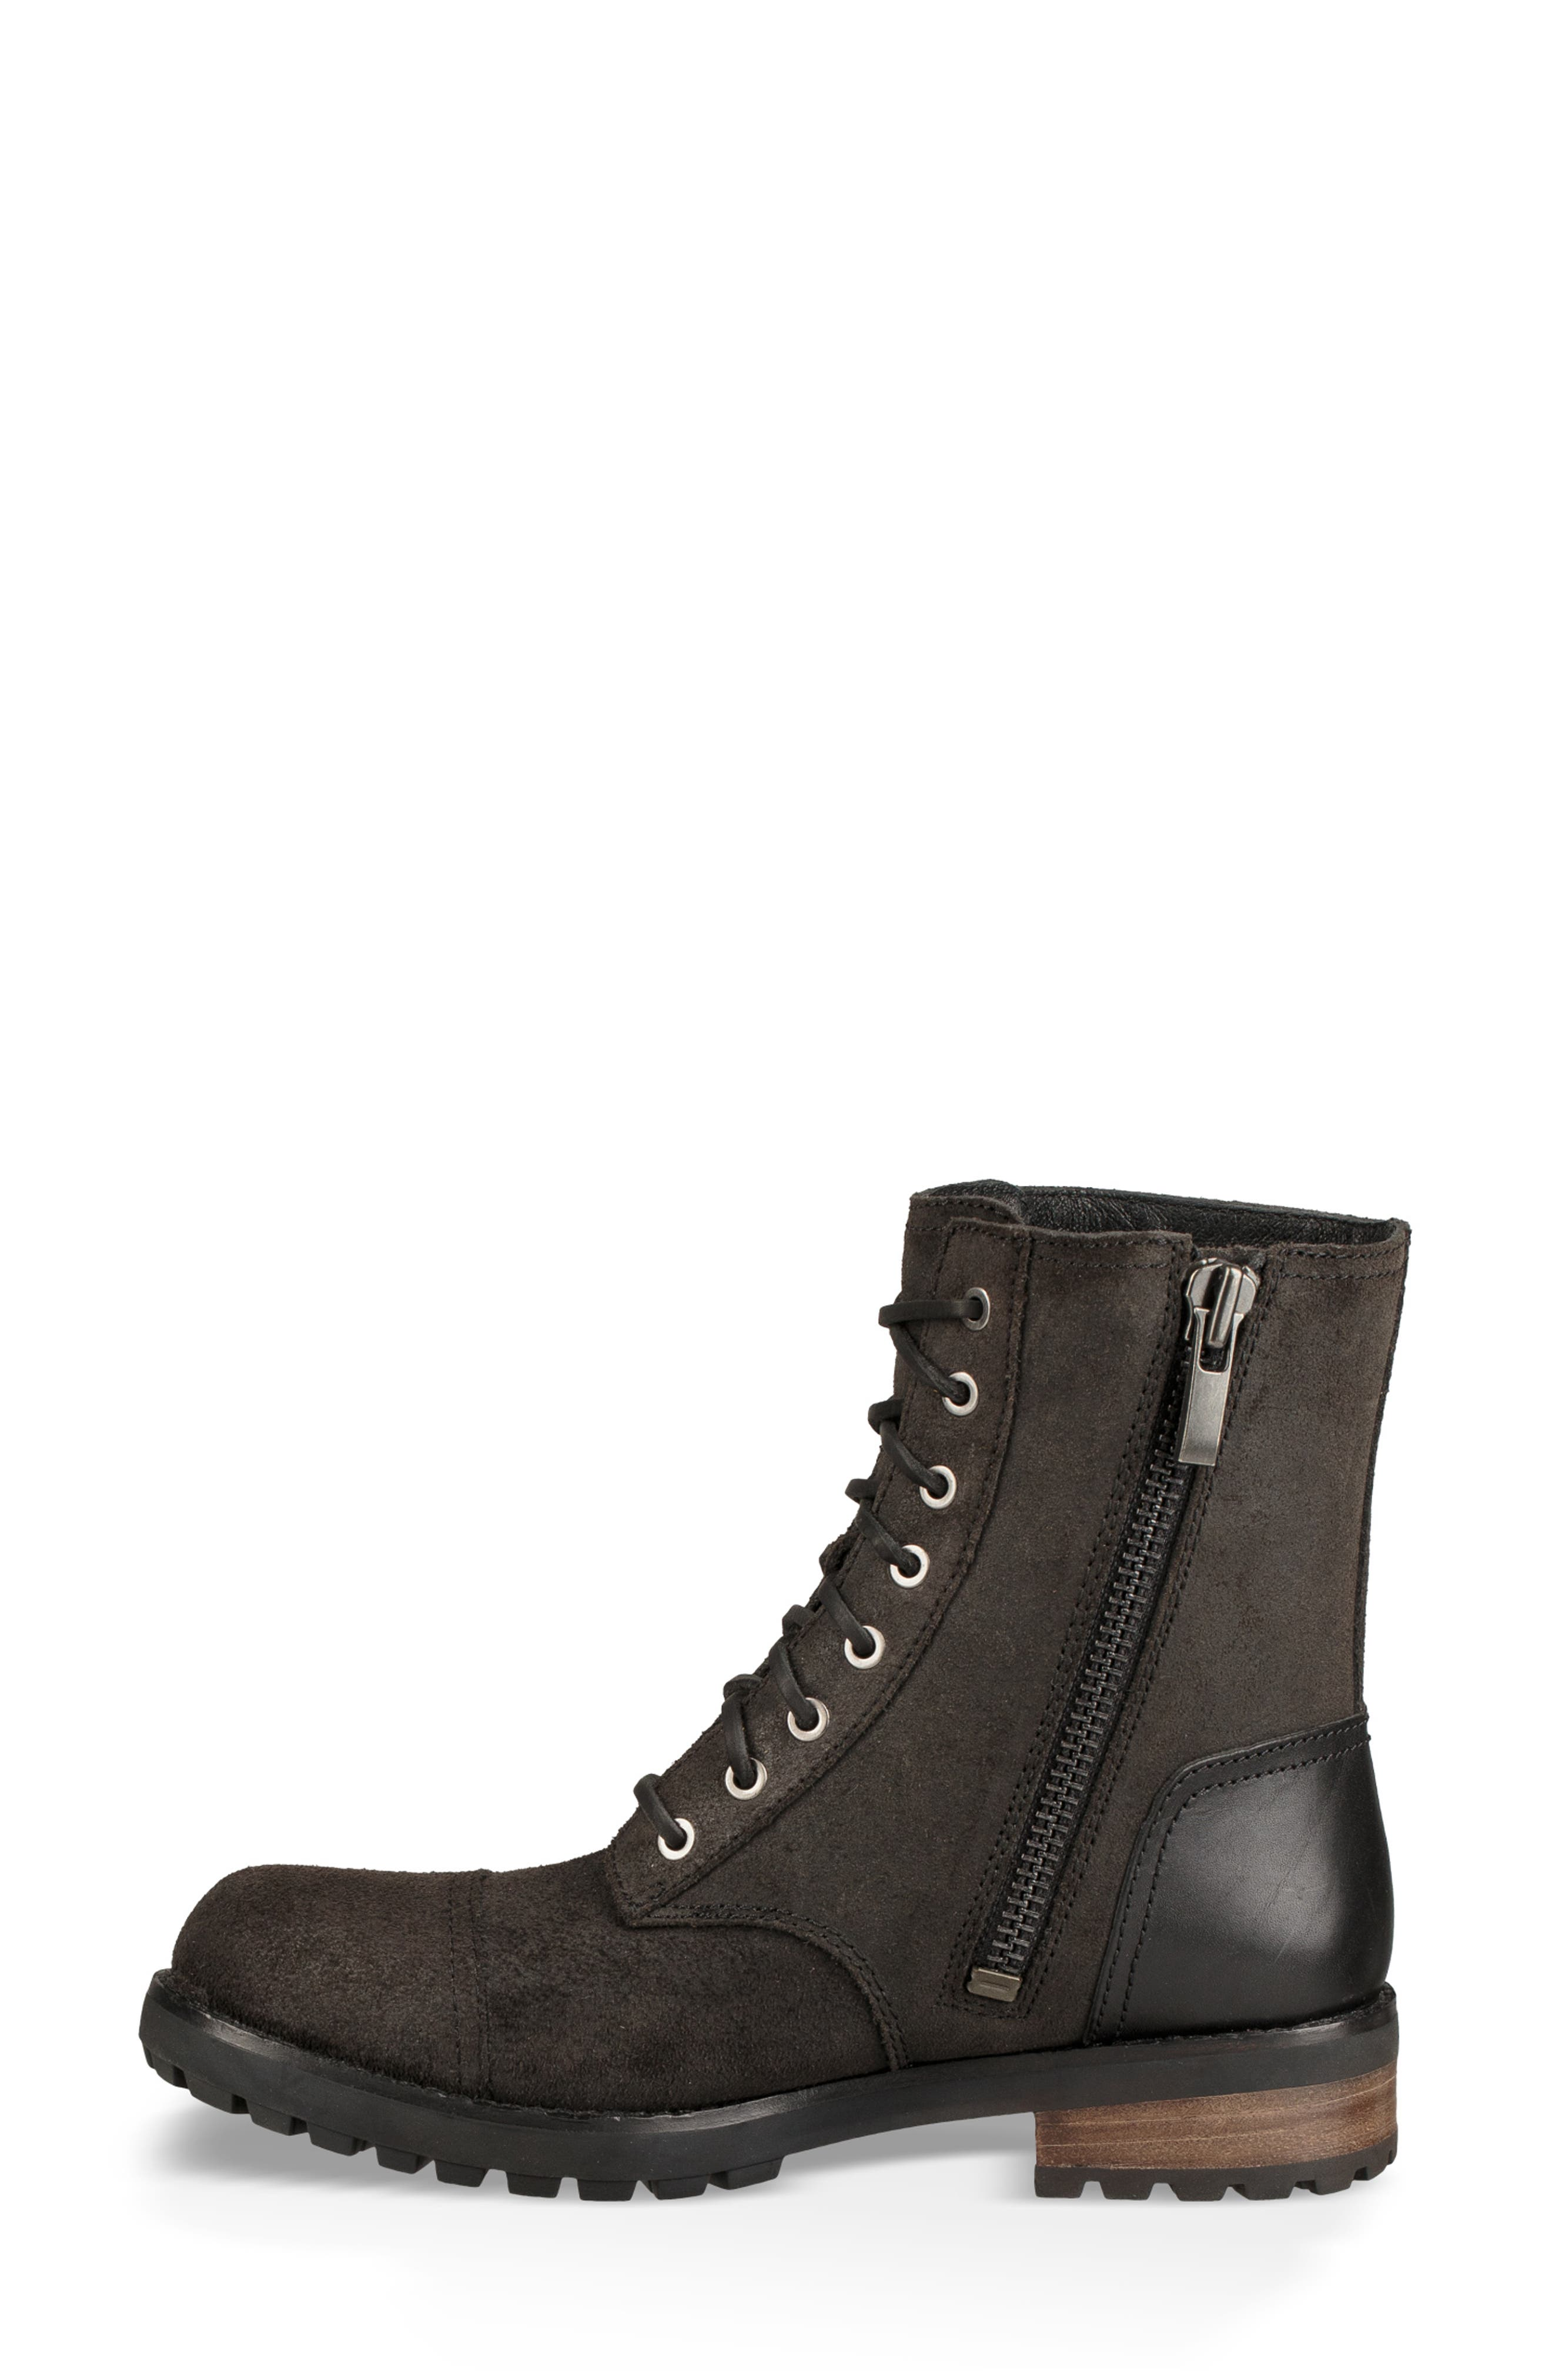 Kilmer II Genuine Shearling Lined Water Resistant Bootie,                             Alternate thumbnail 6, color,                             BLACK LEATHER